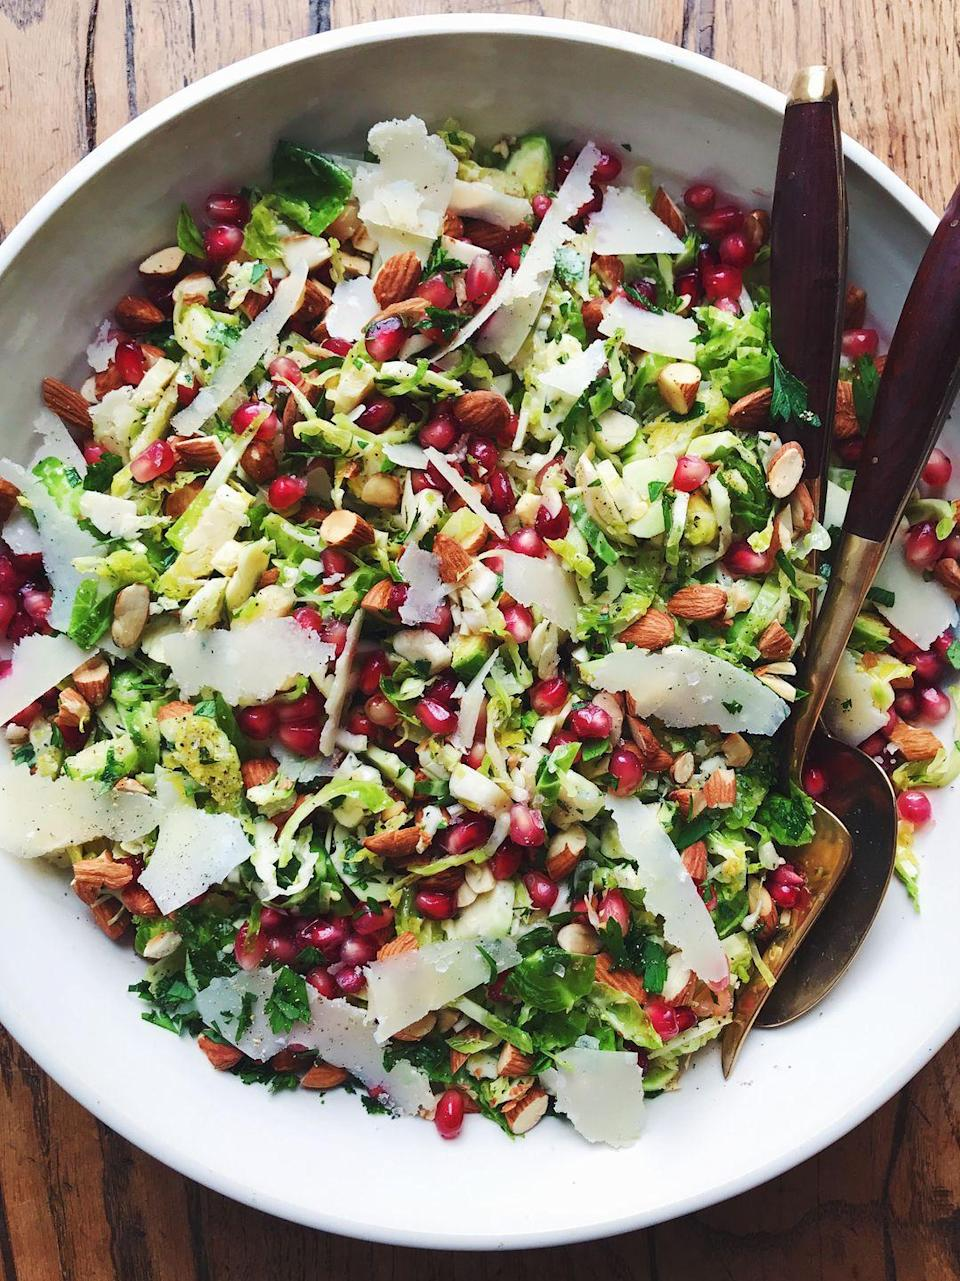 """<p>Shredded brussels>>>lettuce.</p><p>Get the recipe from <a href=""""https://www.delish.com/cooking/recipe-ideas/a21085670/brussels-sprouts-salad-recipe/"""" rel=""""nofollow noopener"""" target=""""_blank"""" data-ylk=""""slk:Delish"""" class=""""link rapid-noclick-resp"""">Delish</a>.</p>"""